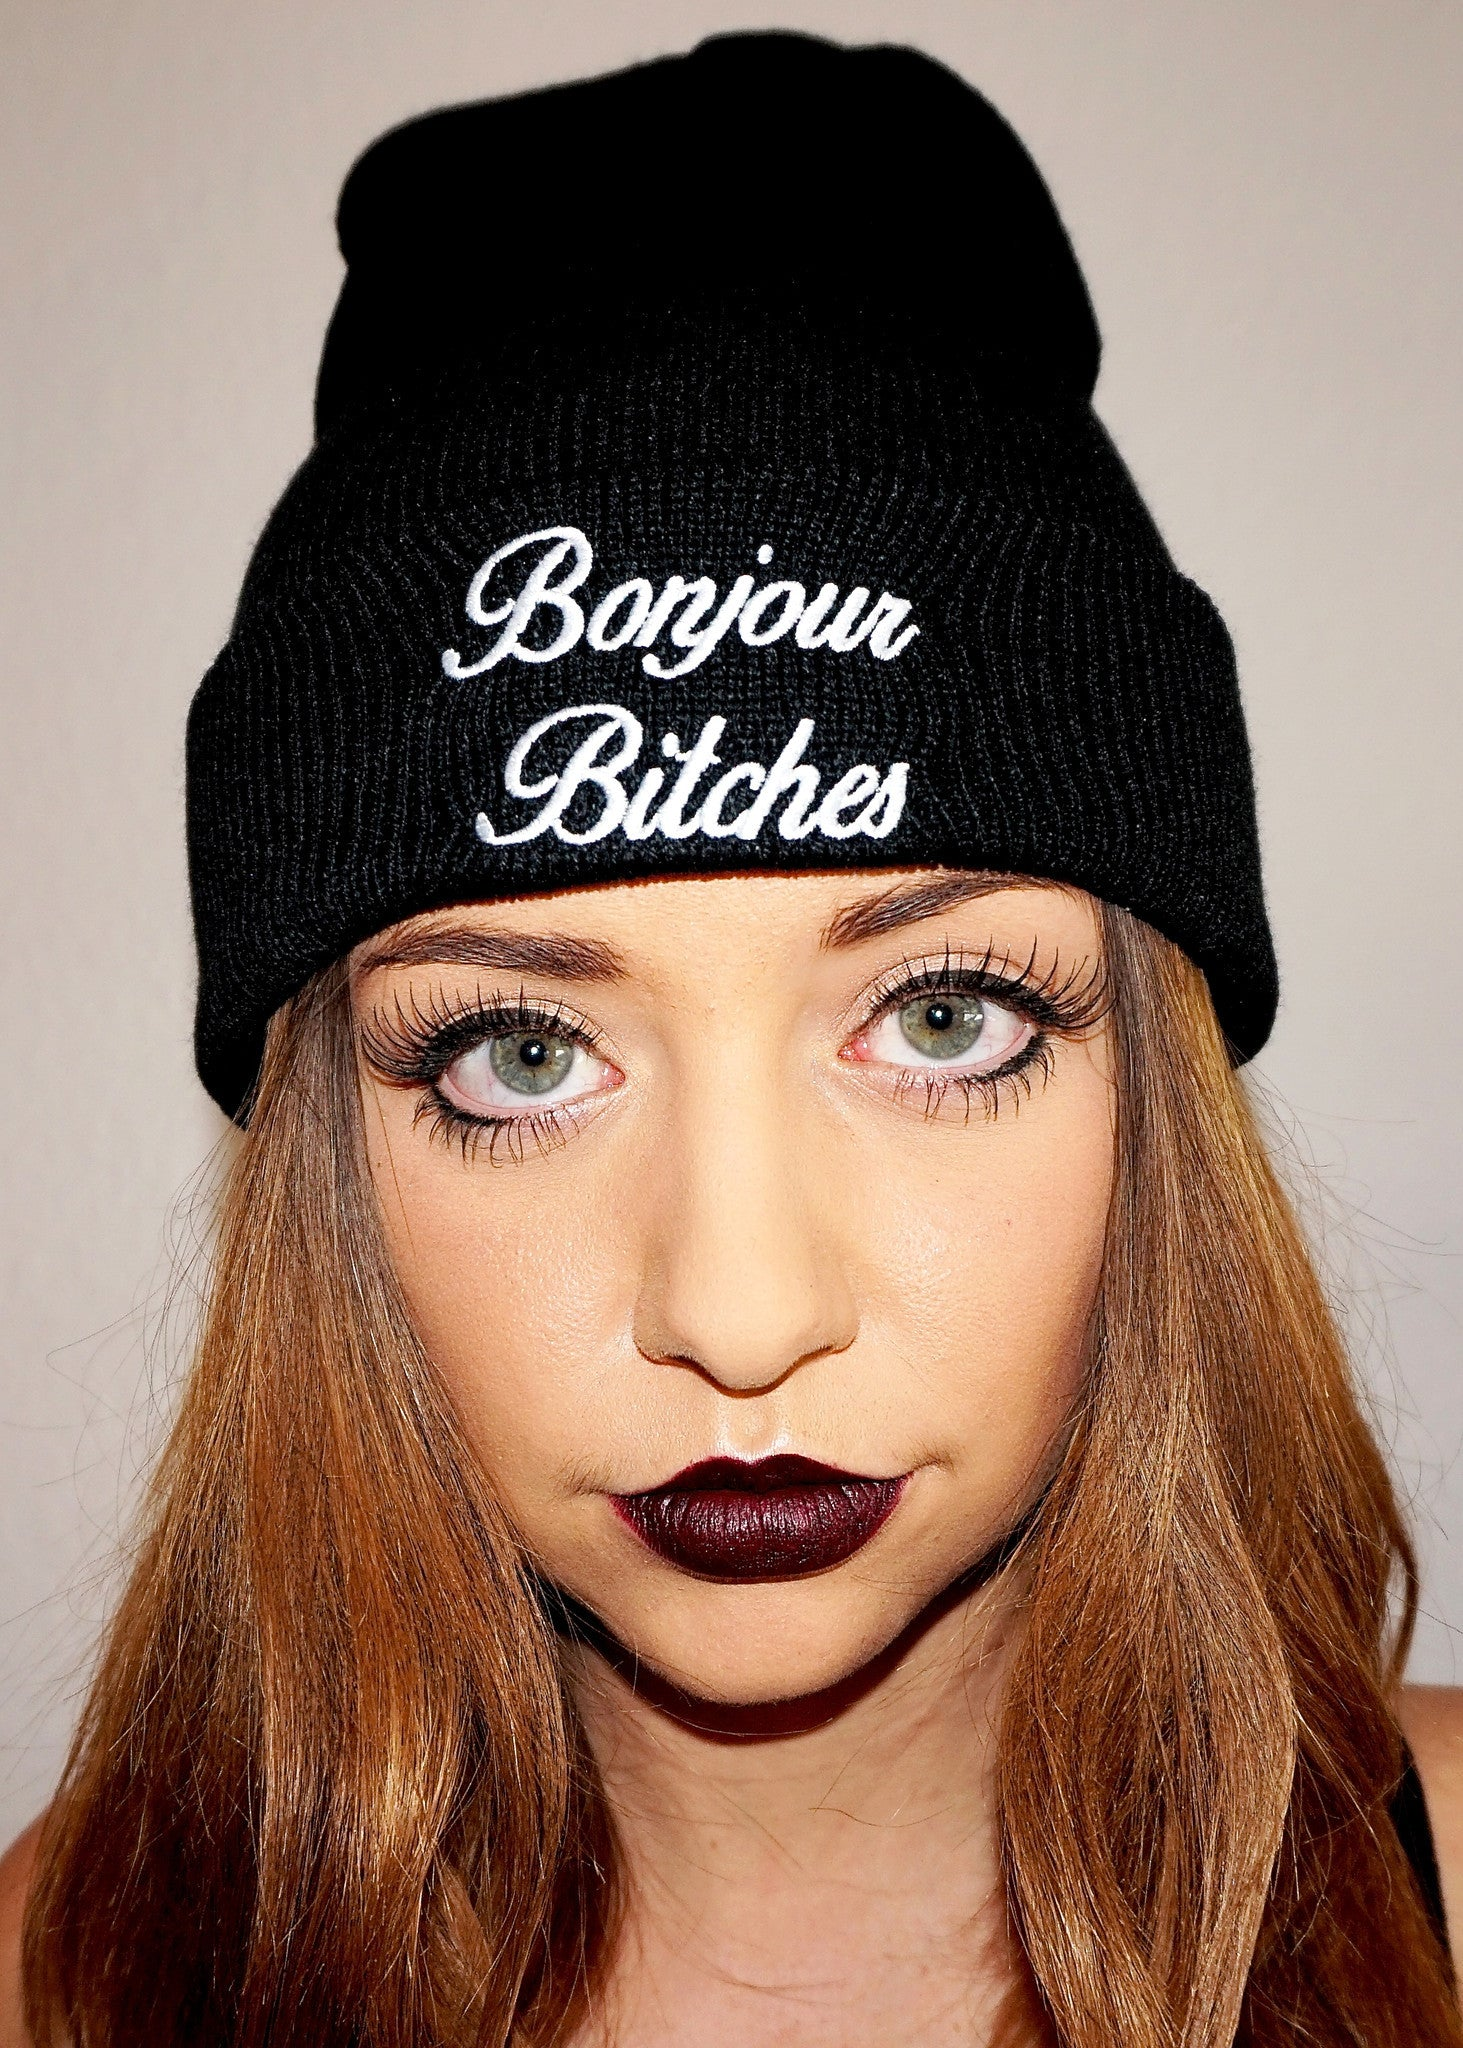 Bonjour Bitches Beanie (SOLD OUT)